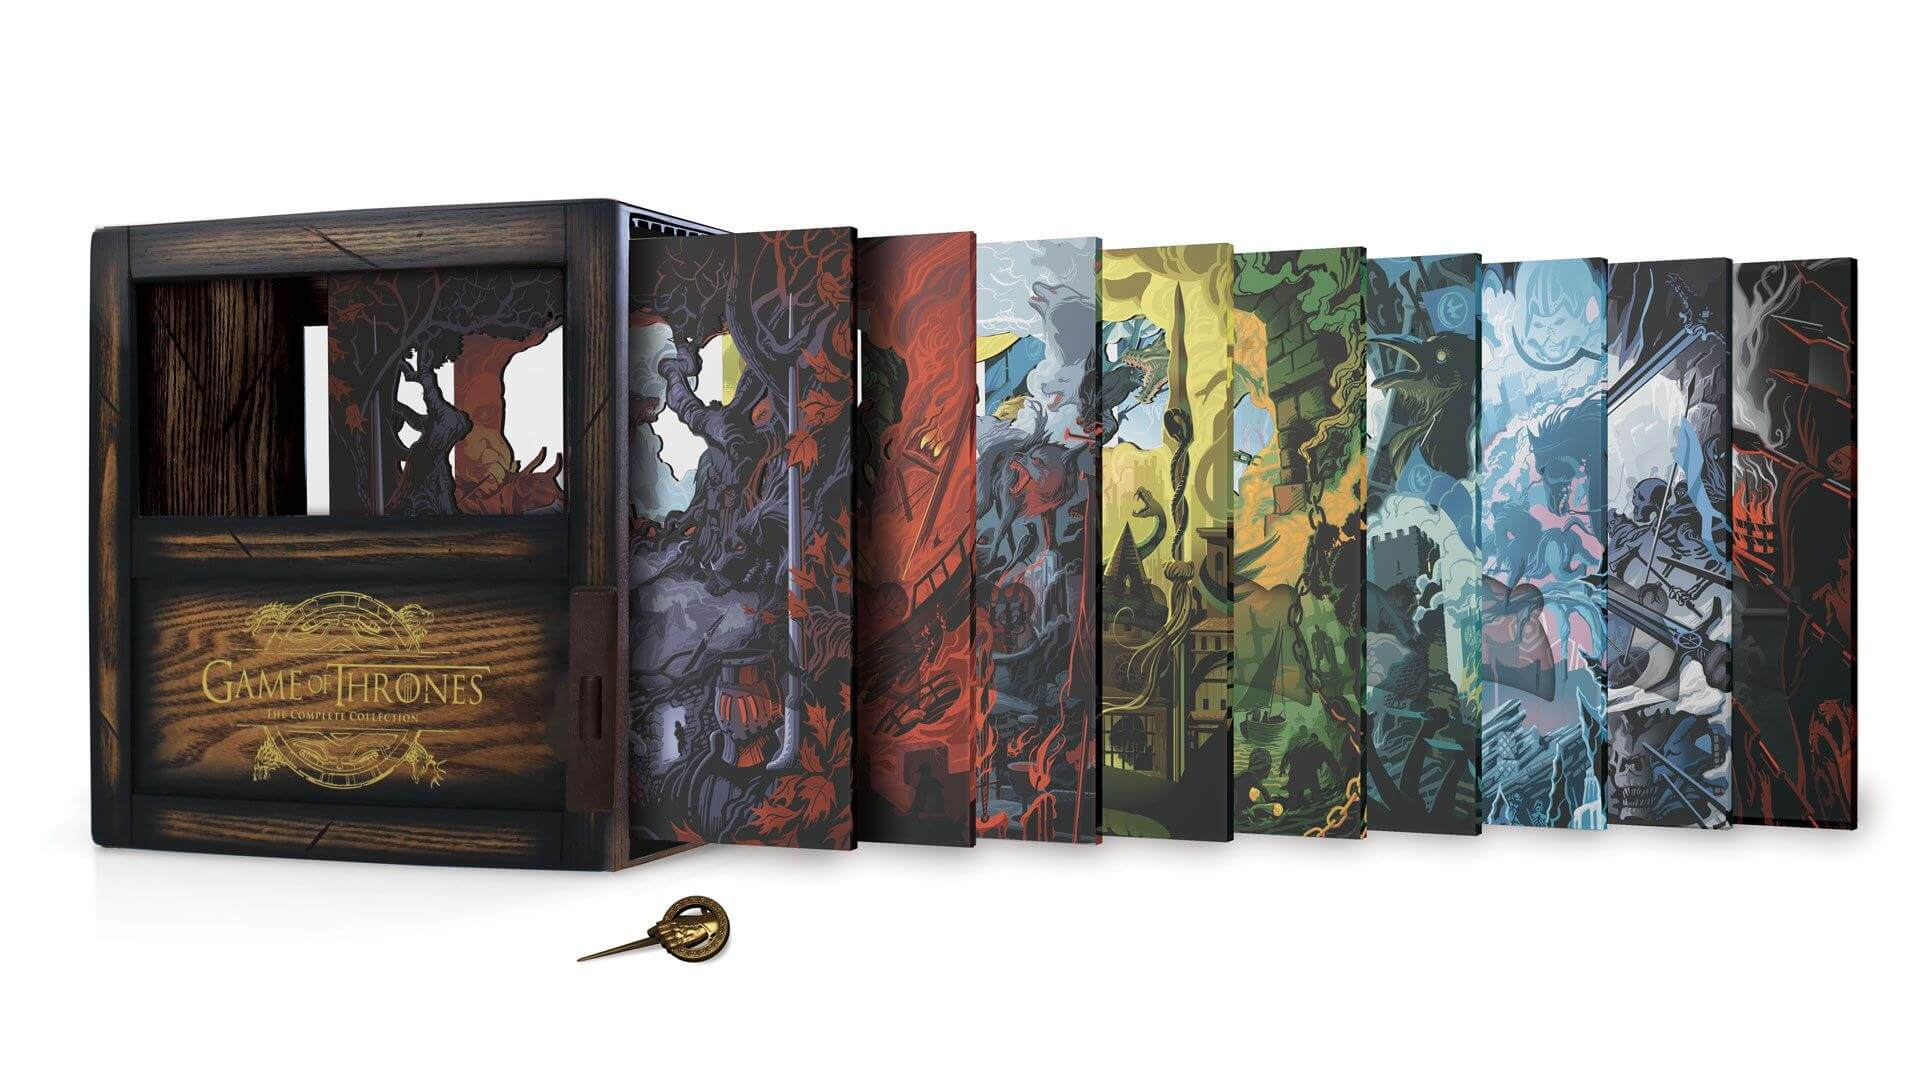 Game of Thrones Blu-ray boxset packs all episodes and bonus content into a very cool box